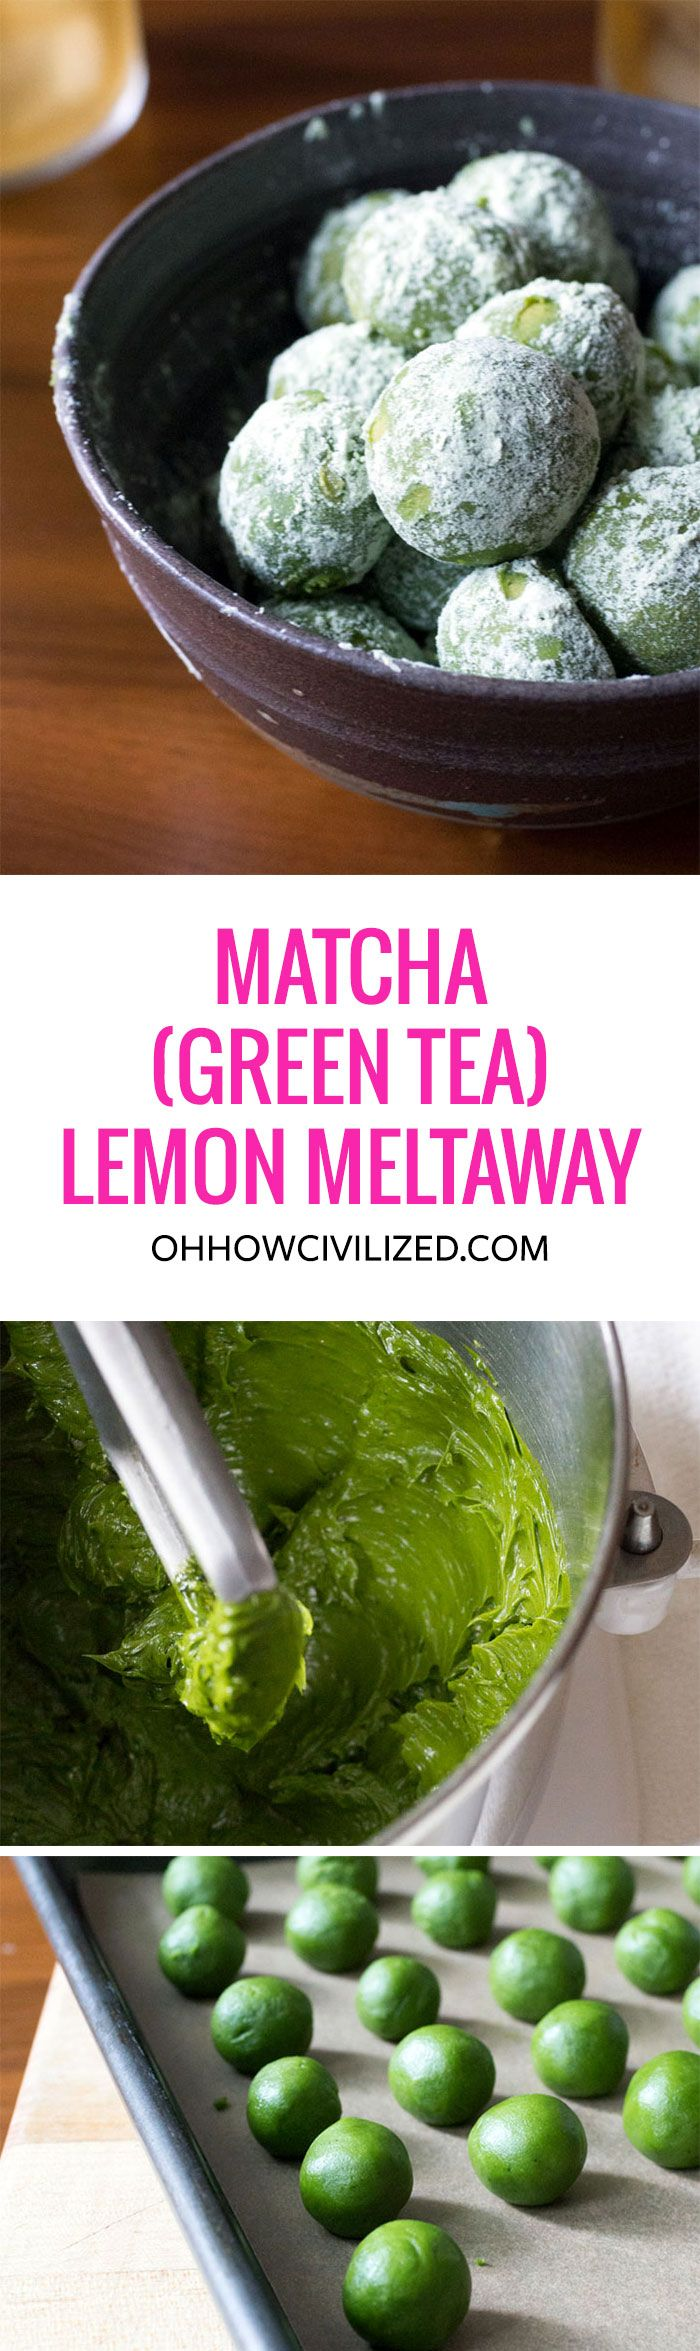 Queenie came up with this mini matcha lemon meltaway cookie recipe that pairs perfectly with tea — hot or iced.I'm warning you now: these cookies  are highly ad